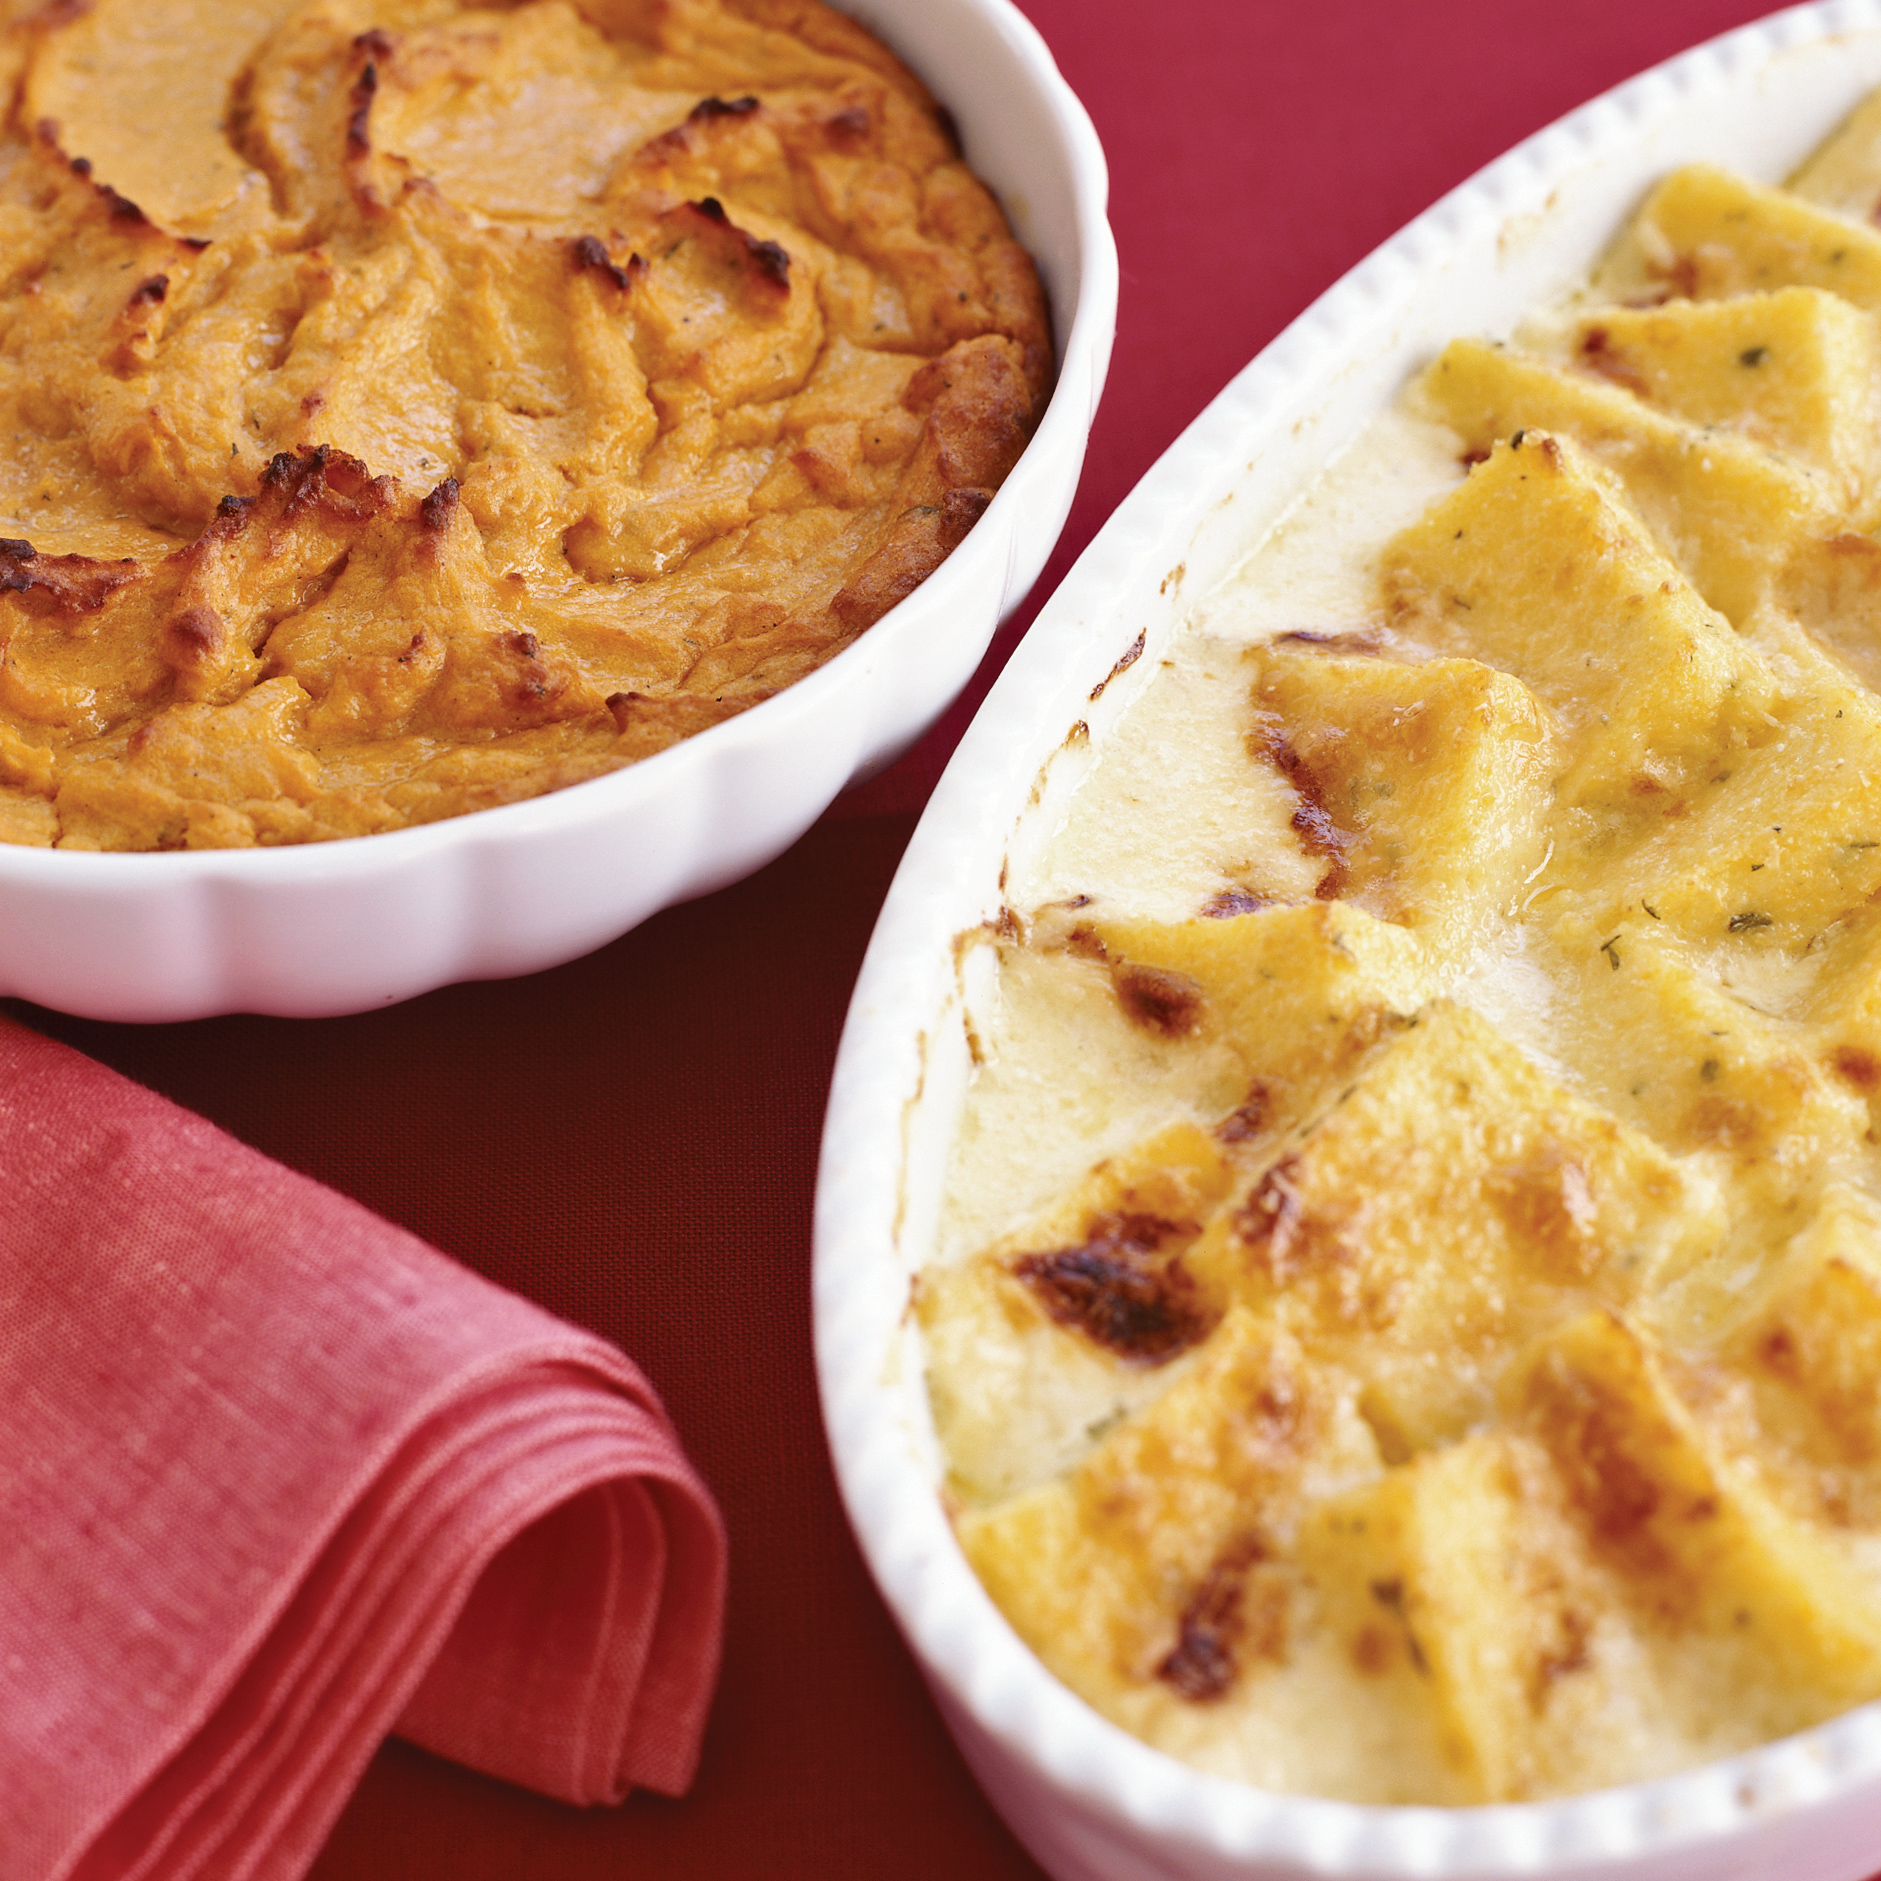 Holiday Potluck Recipes: Herbed Polenta and Parmesan Gratin